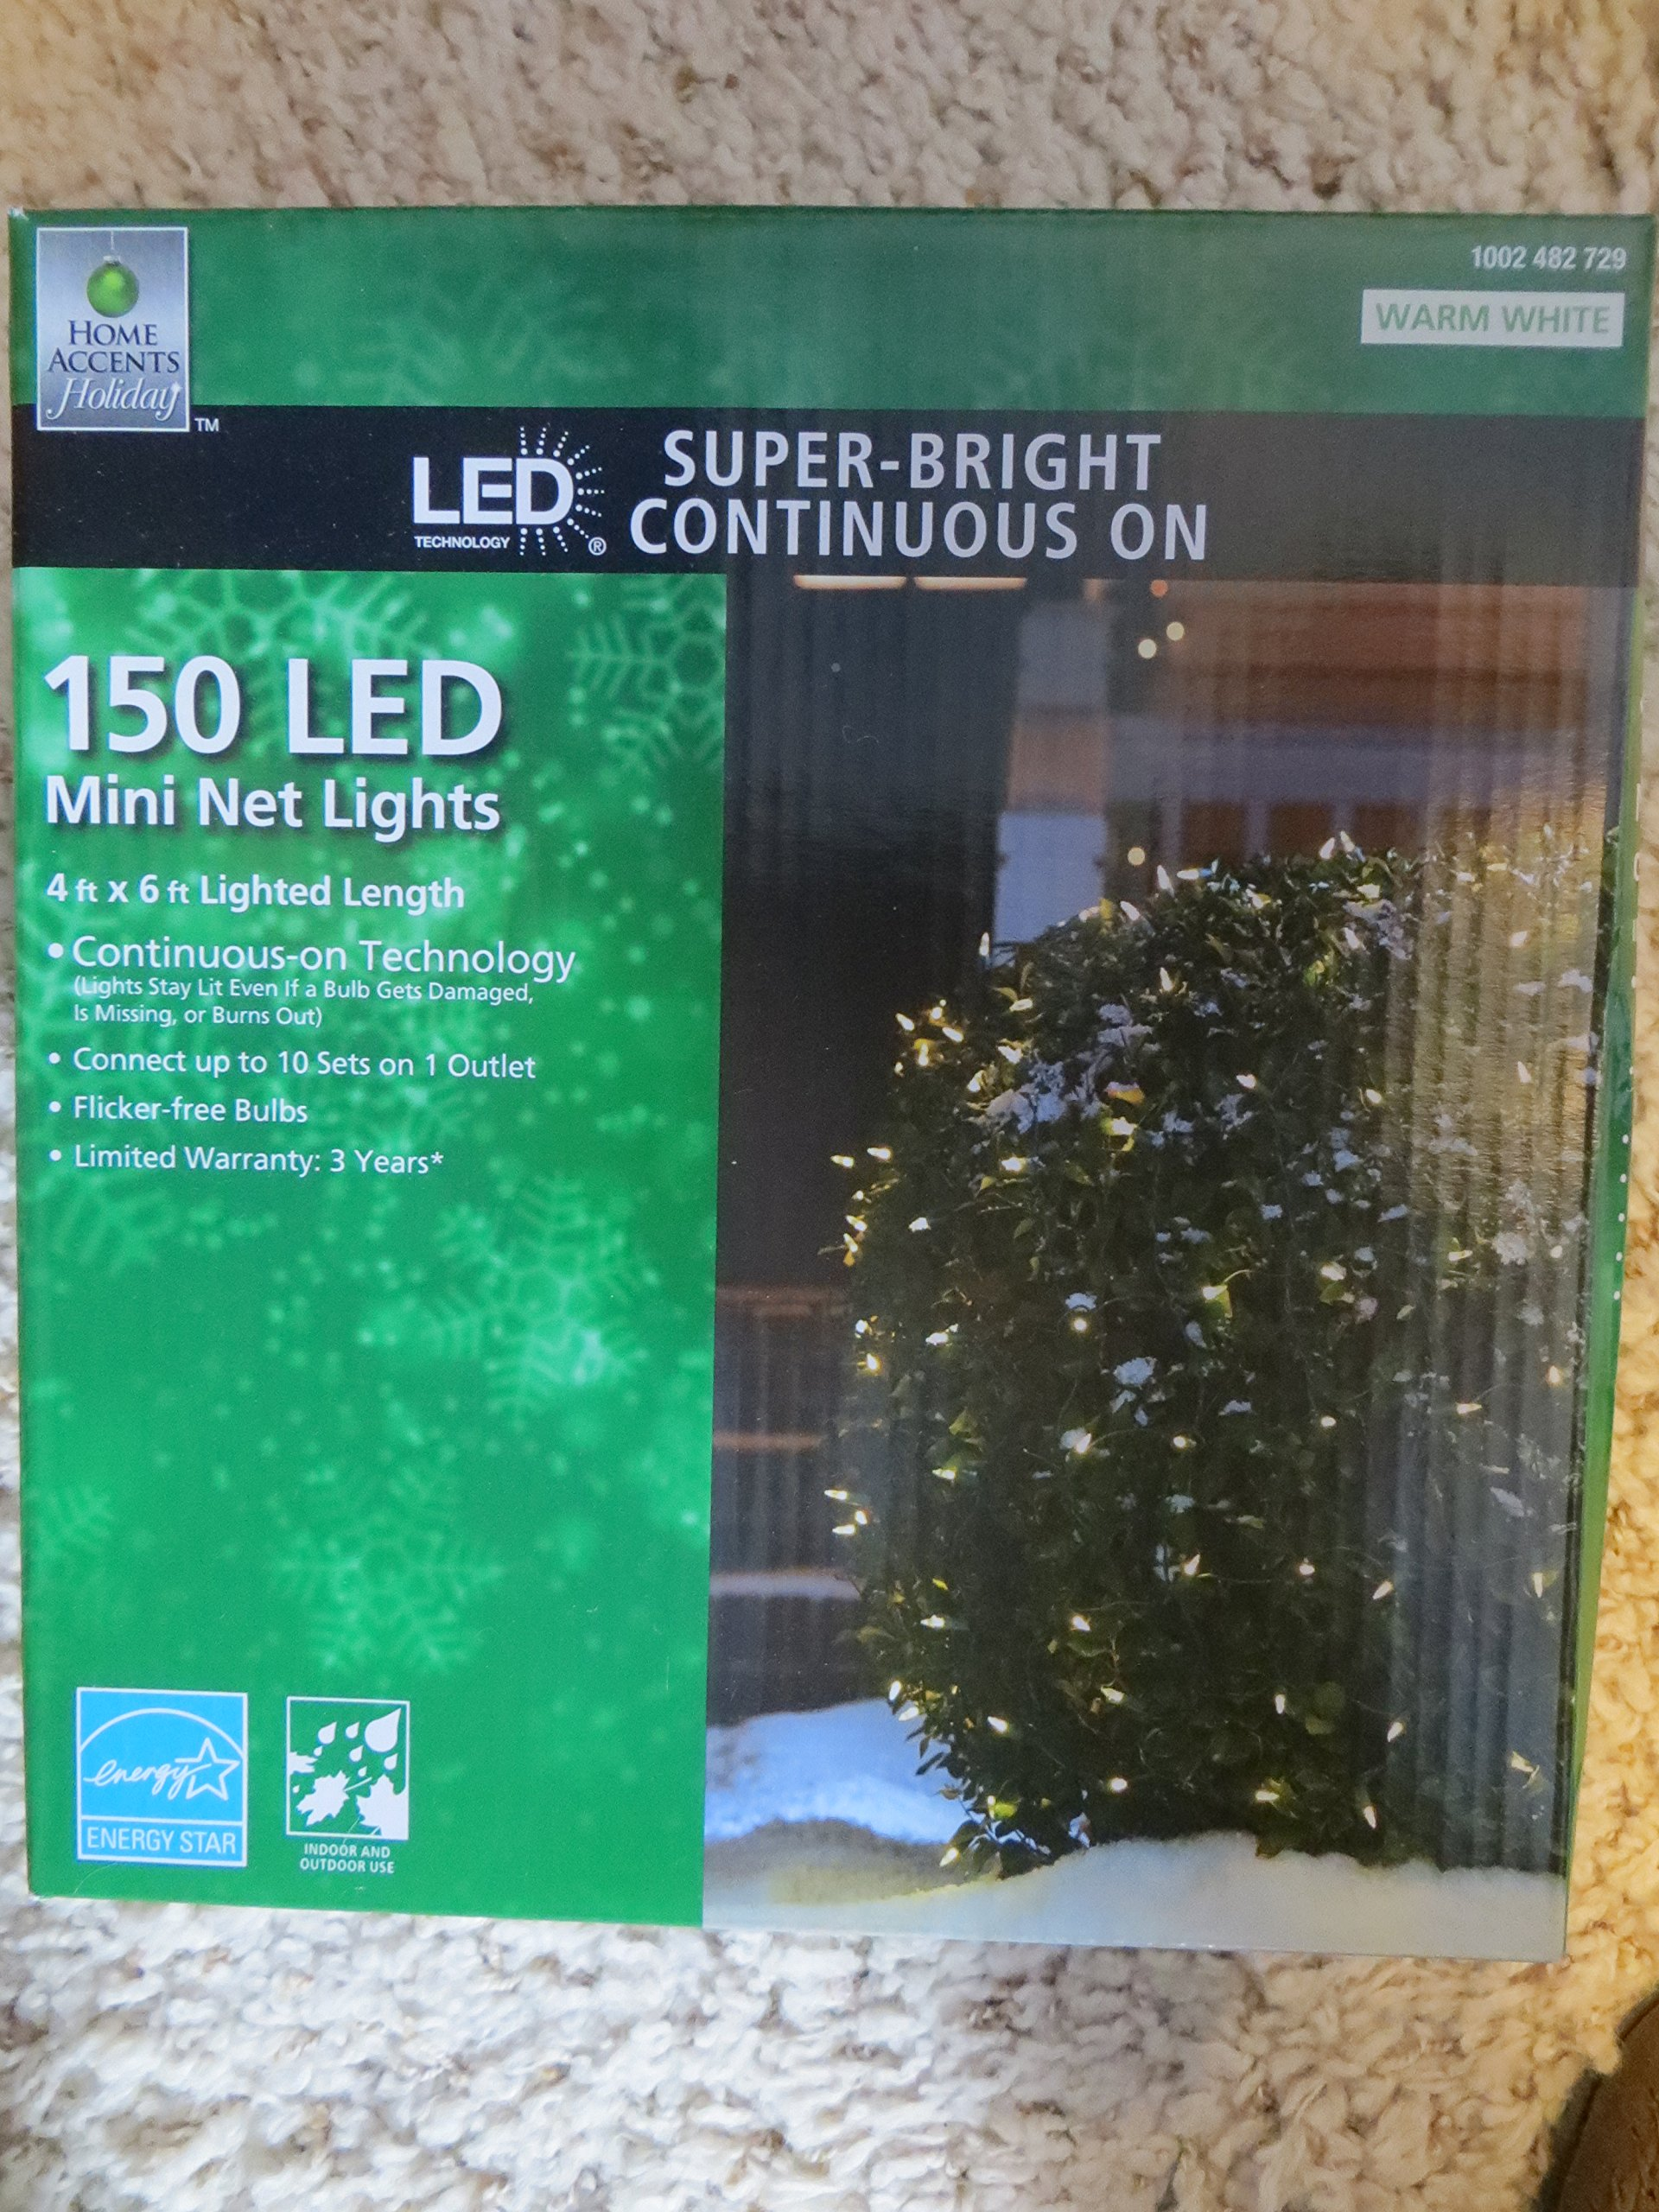 Home Accents 150 LED Warm White Super Bright Continuous ON Mini NET lights